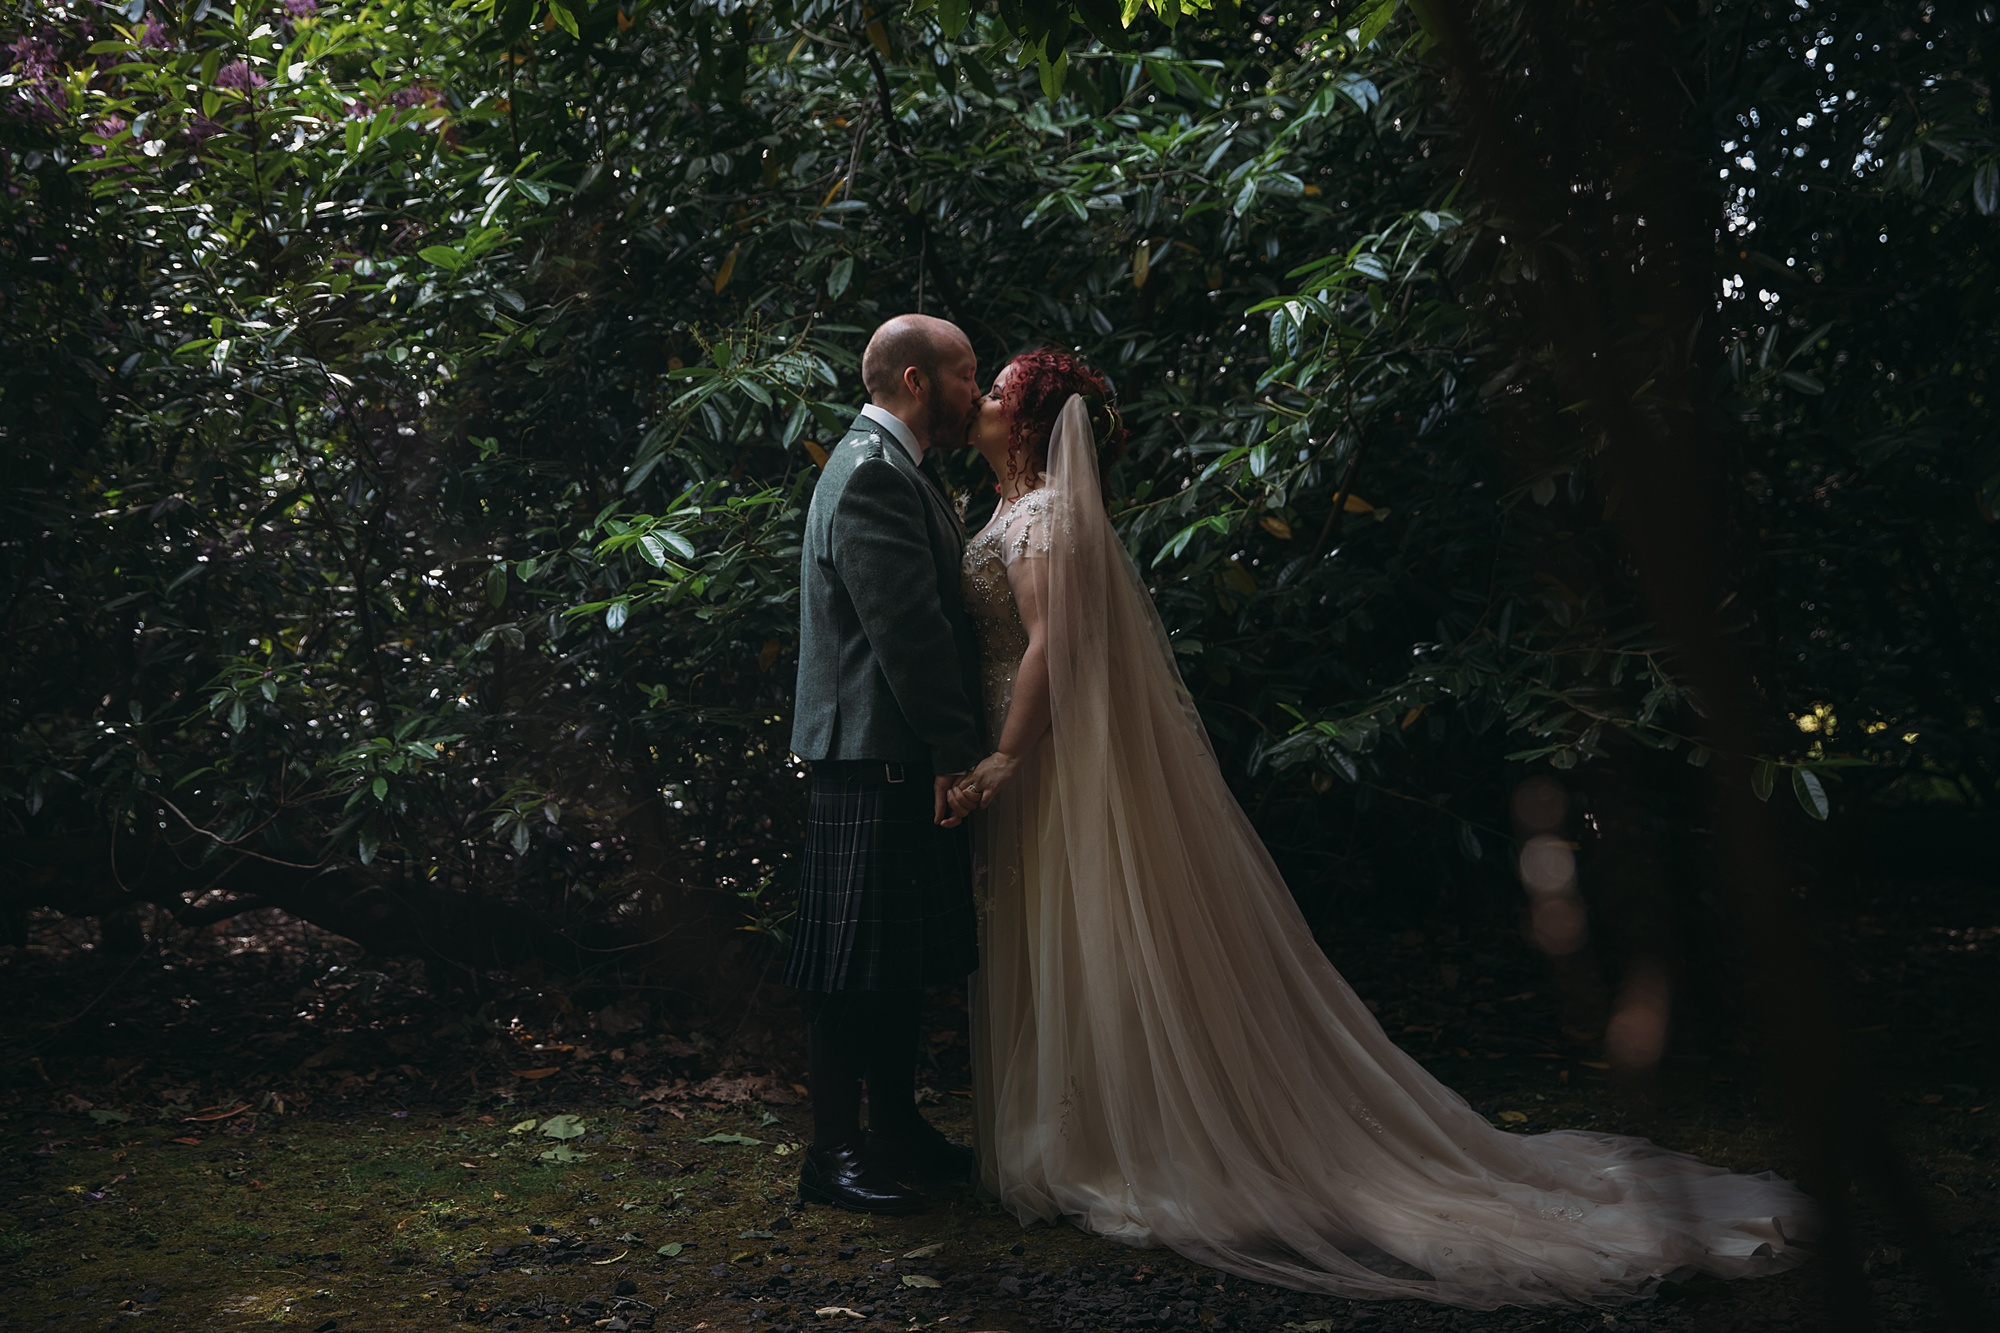 d6516dec298ab A Maggie Sottero Dress for a Gorgeous Woodland + Literature Inspired Wedding  in a Scottish Byre | Love My Dress® UK Wedding Blog + Wedding Directory